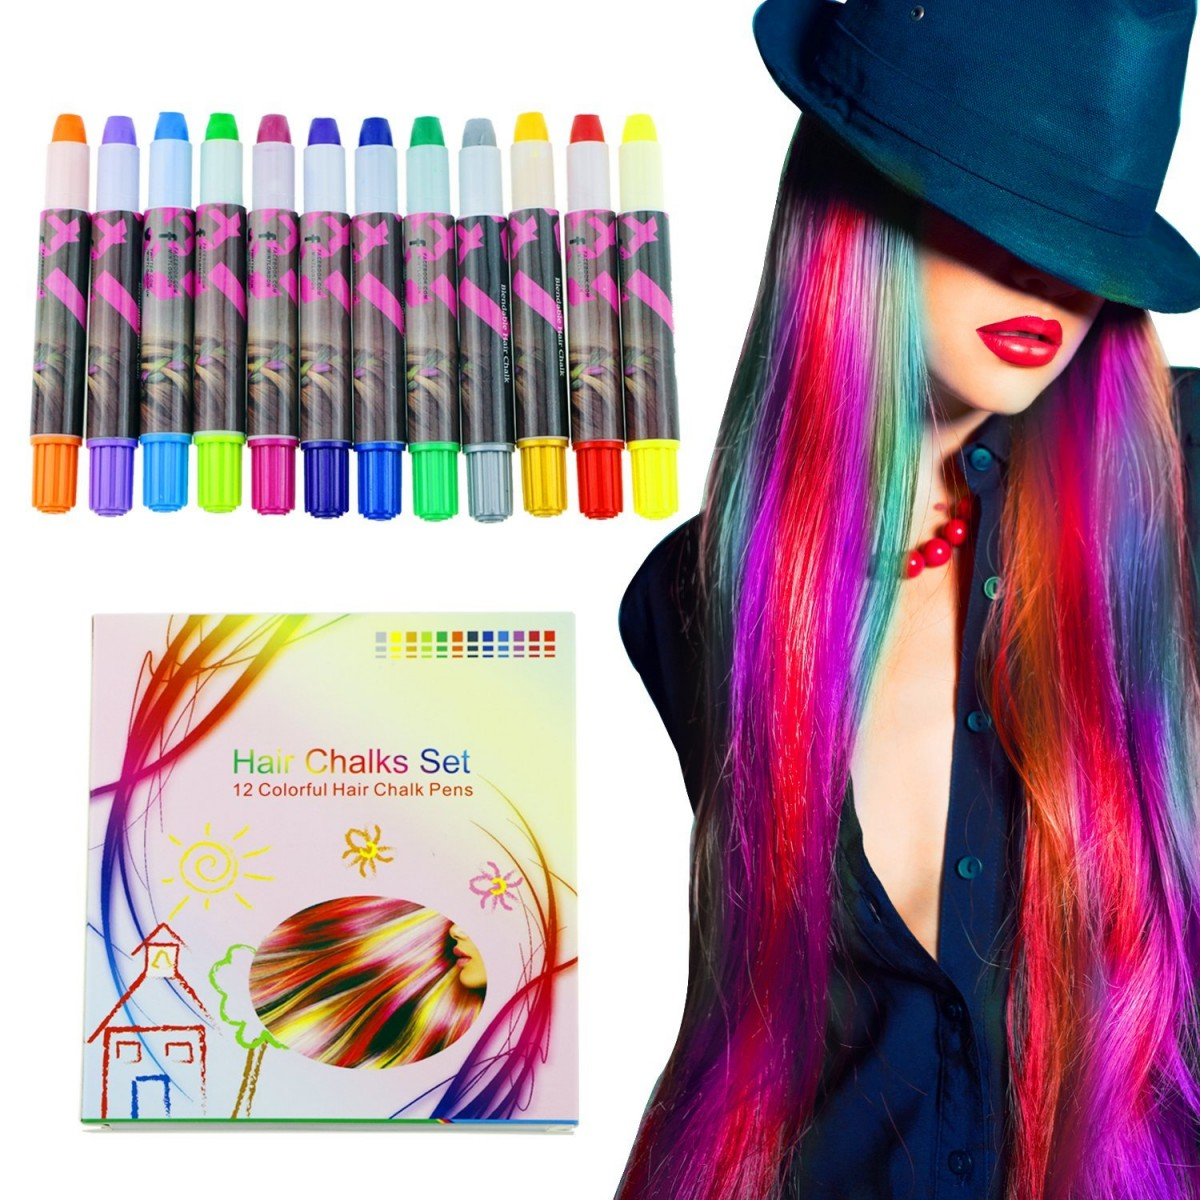 Buluri Temporary Hair Chalk Set Non Toxic 12 Colorful Beautiful Hair Chalk Pens For Girls Party Cosplay Diy Works On All Hair Colors